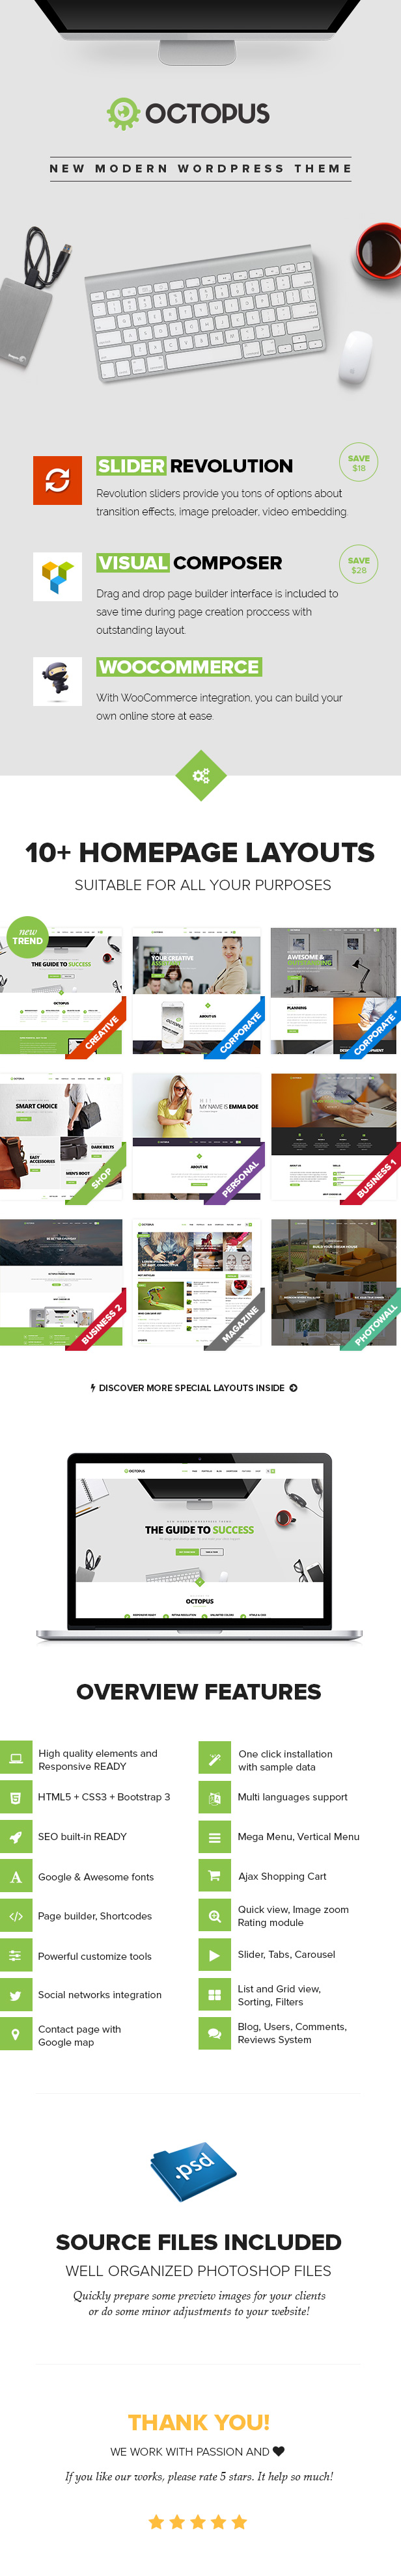 Octopus - Multipurpose Business WordPress Theme - 6